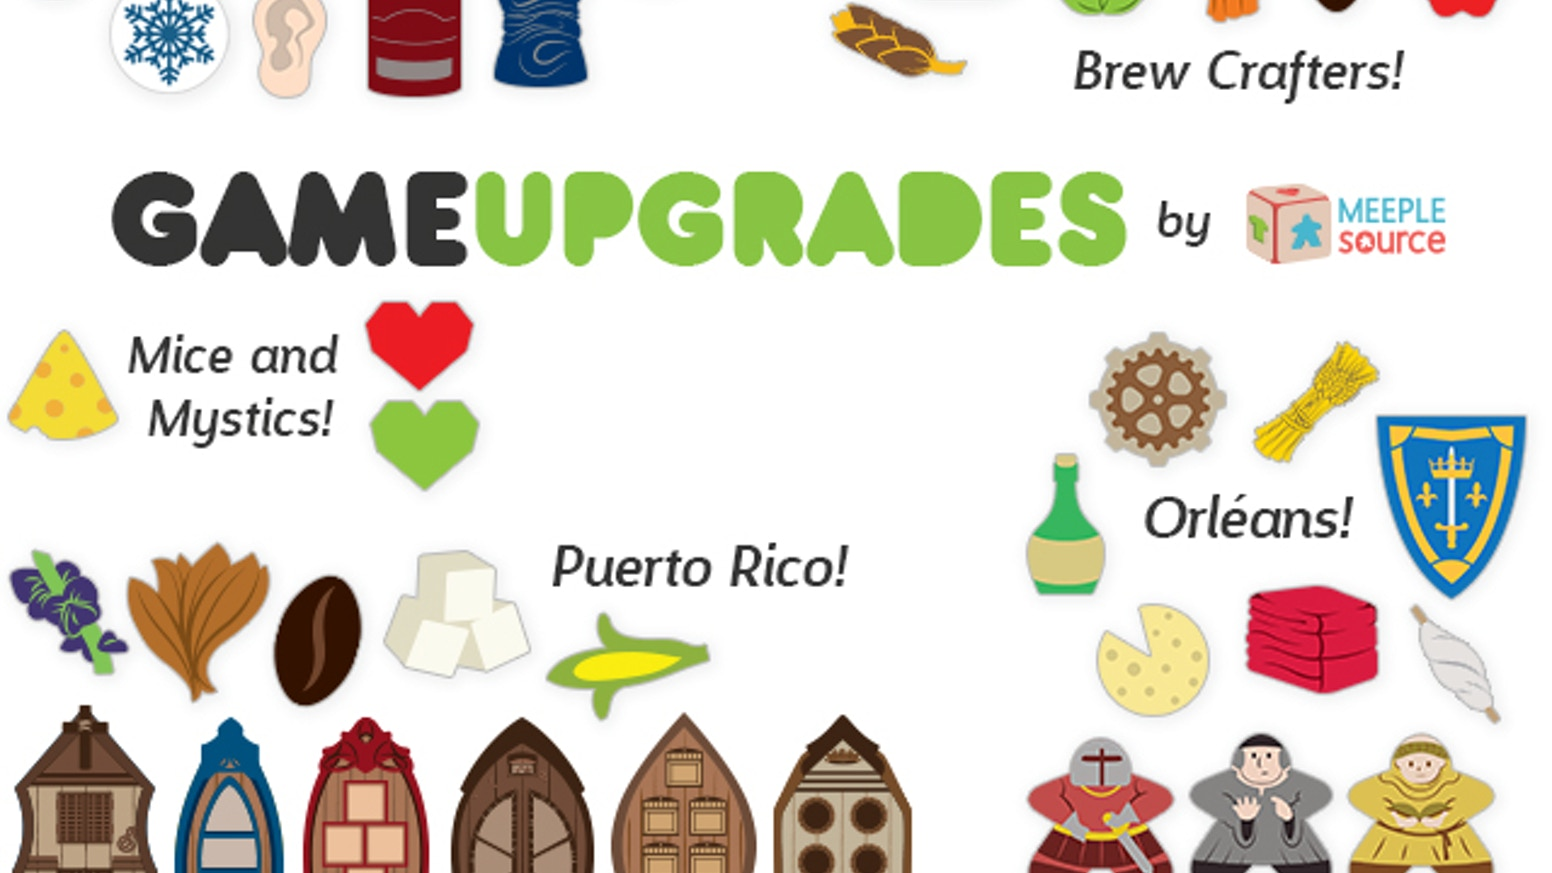 Premium upgrade kits for Orléans, Puerto Rico, Dead of Winter, Targi, Mice & Mystics, Glass Road, Arkham Horror, Brew Crafters, & more!